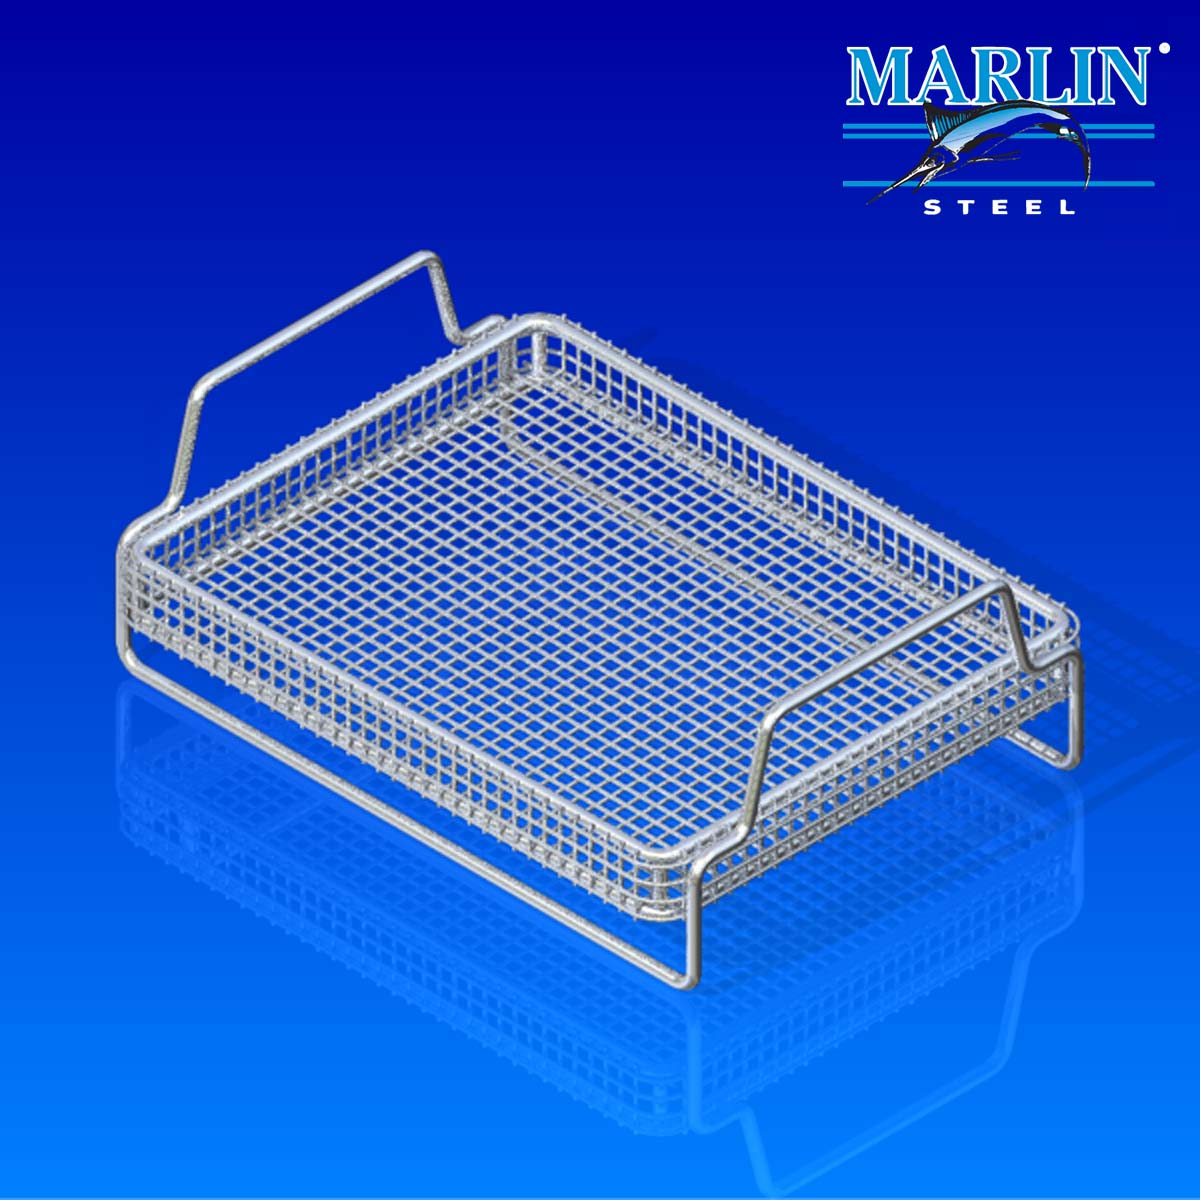 Marlin Steel Basket with Handles 907001